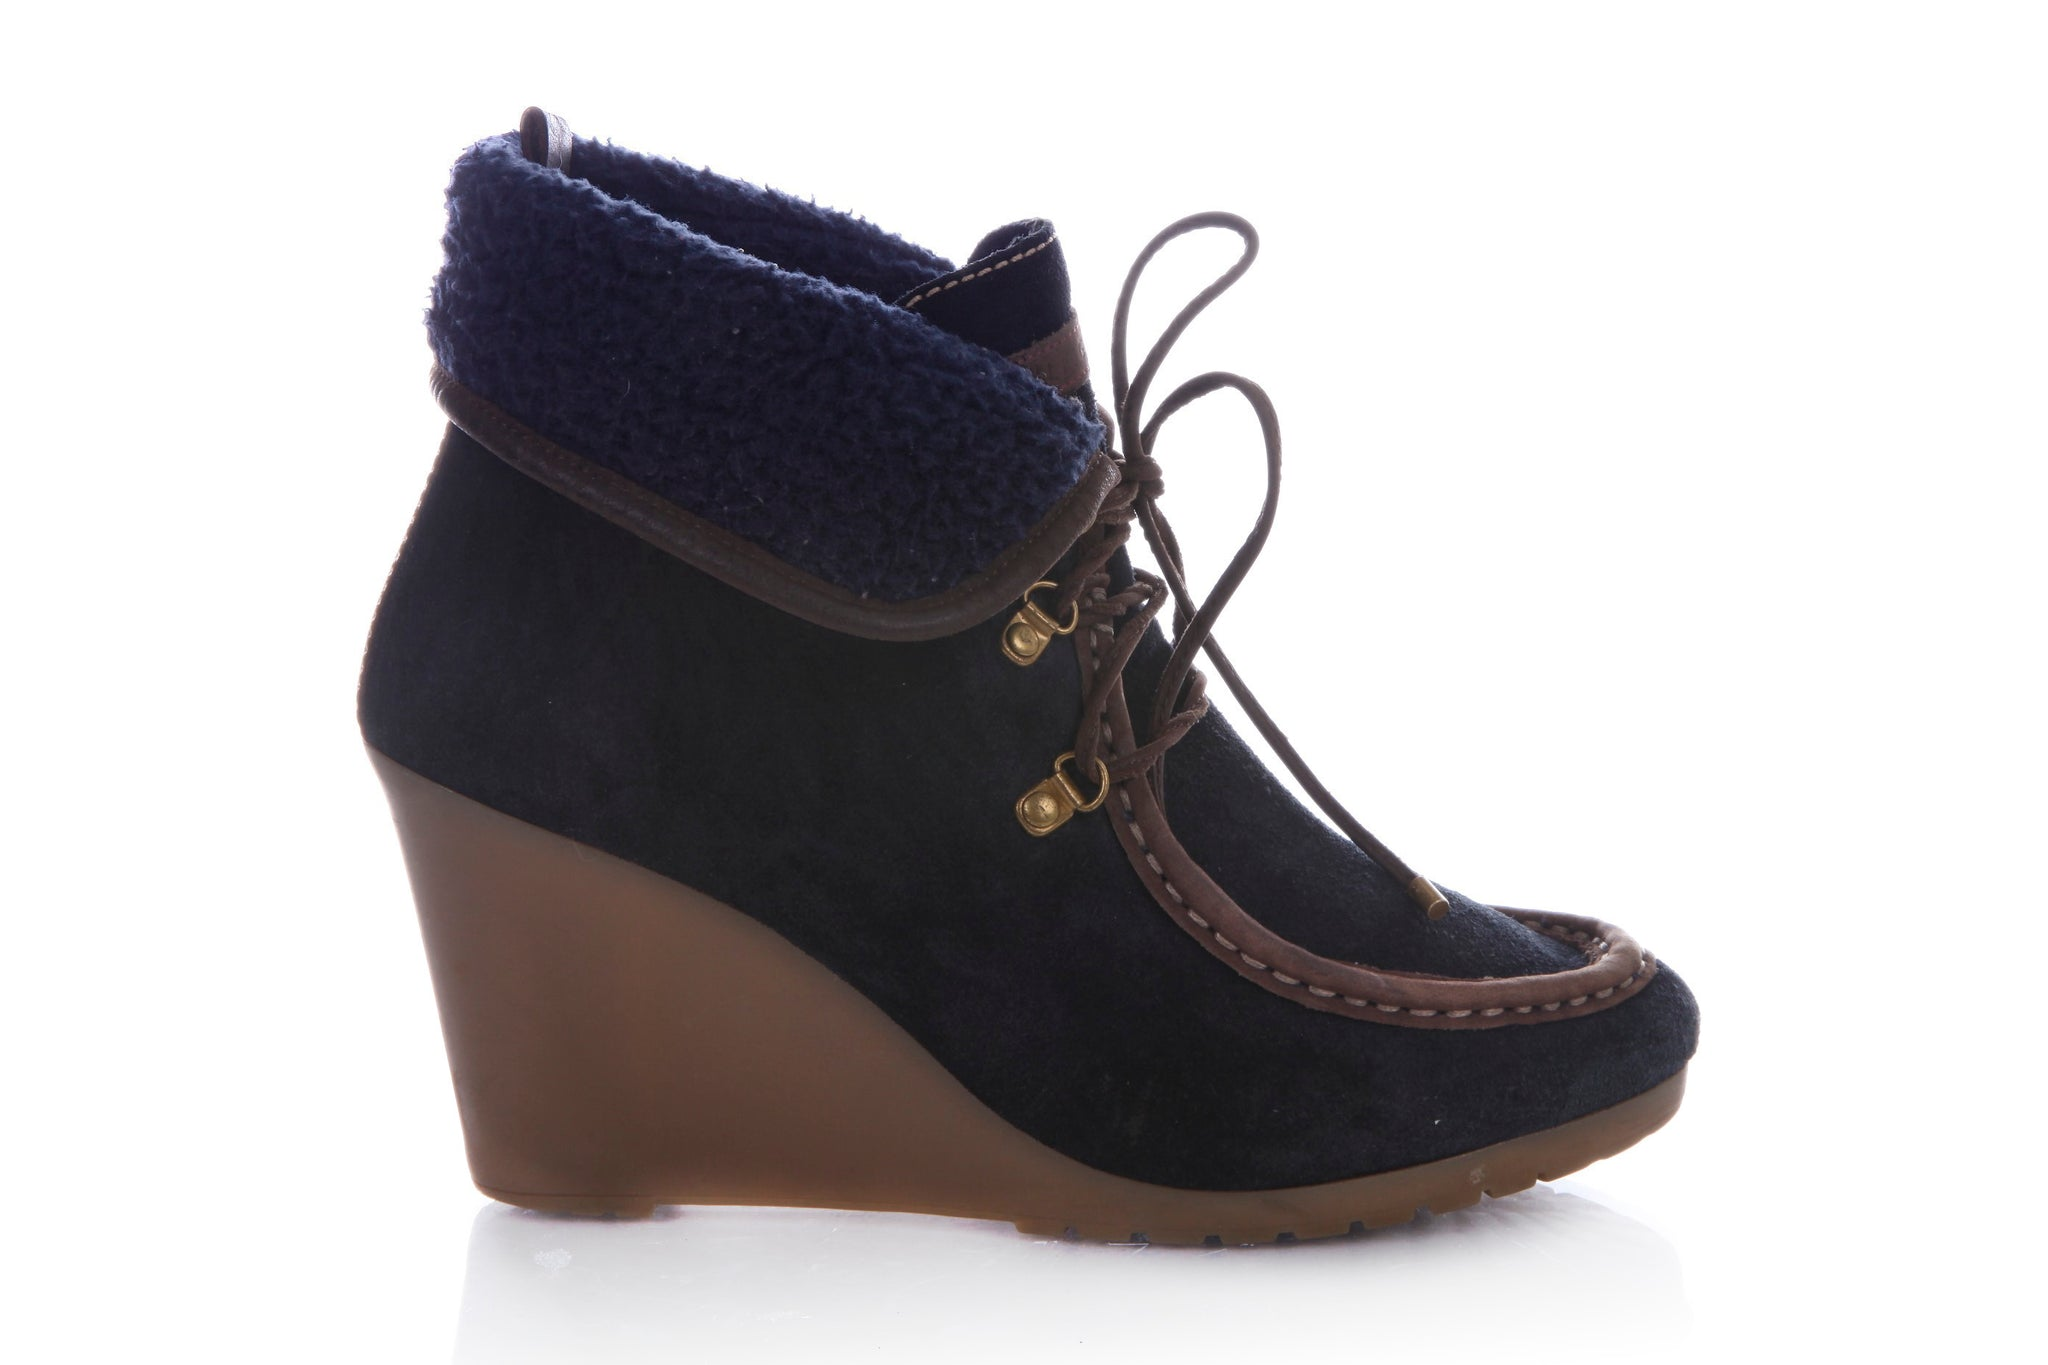 TOMMY HILFIGER Zaria Wedge Booties Suede Leather Navy Blue Size 7